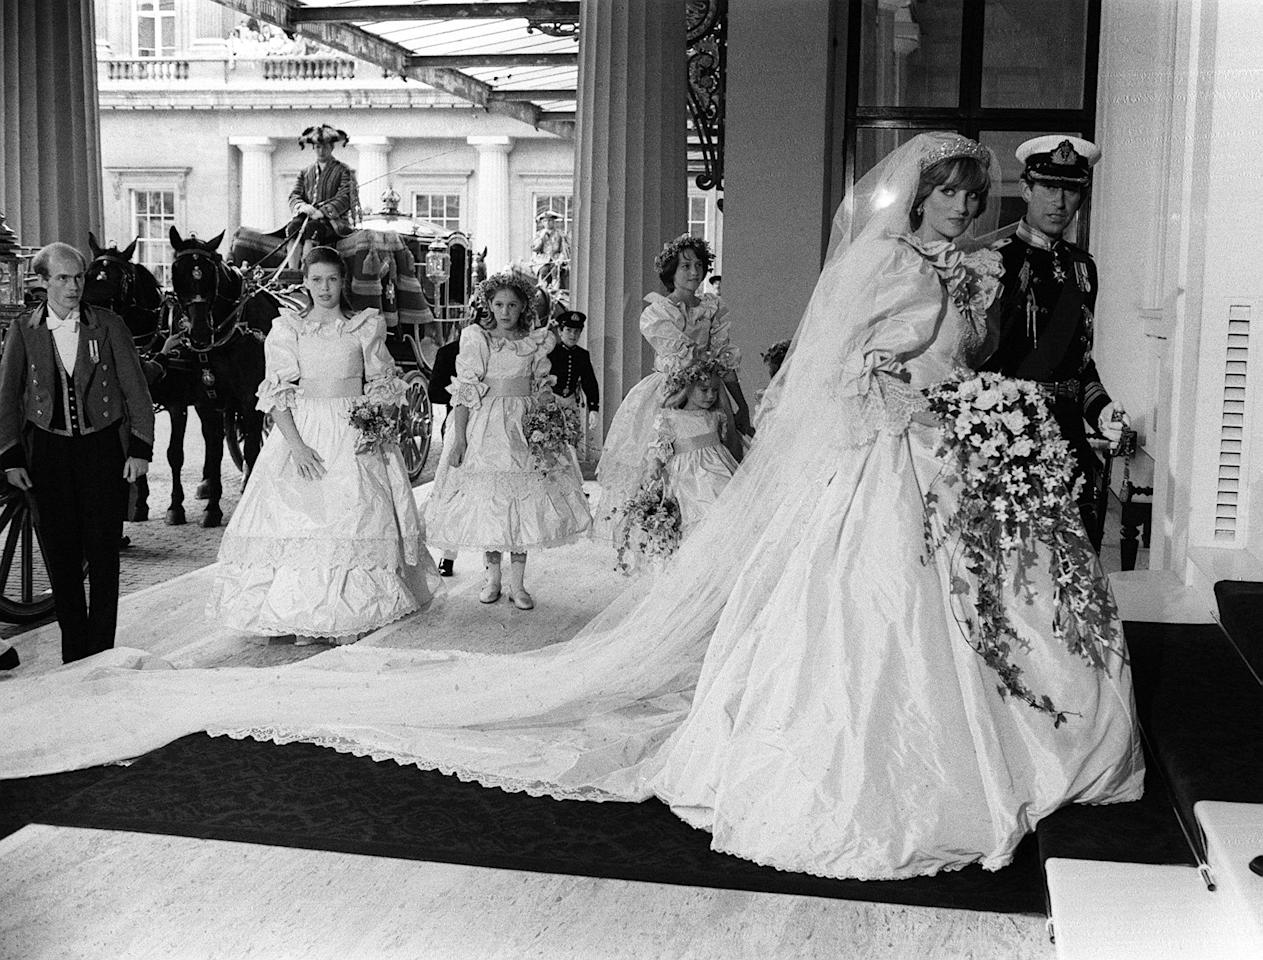 <p>People were thrilled when Lady Diana Spencer married Prince Charles in 1981. The dress! The ring! They couldn't get enough of the romance — and you've likely seen approximately a million pictures from that day as a result. Still, I dove deep into the archives and managed to find some photos you probably haven't seen before. Prepare yourself for some serious gems, ahead.</p>